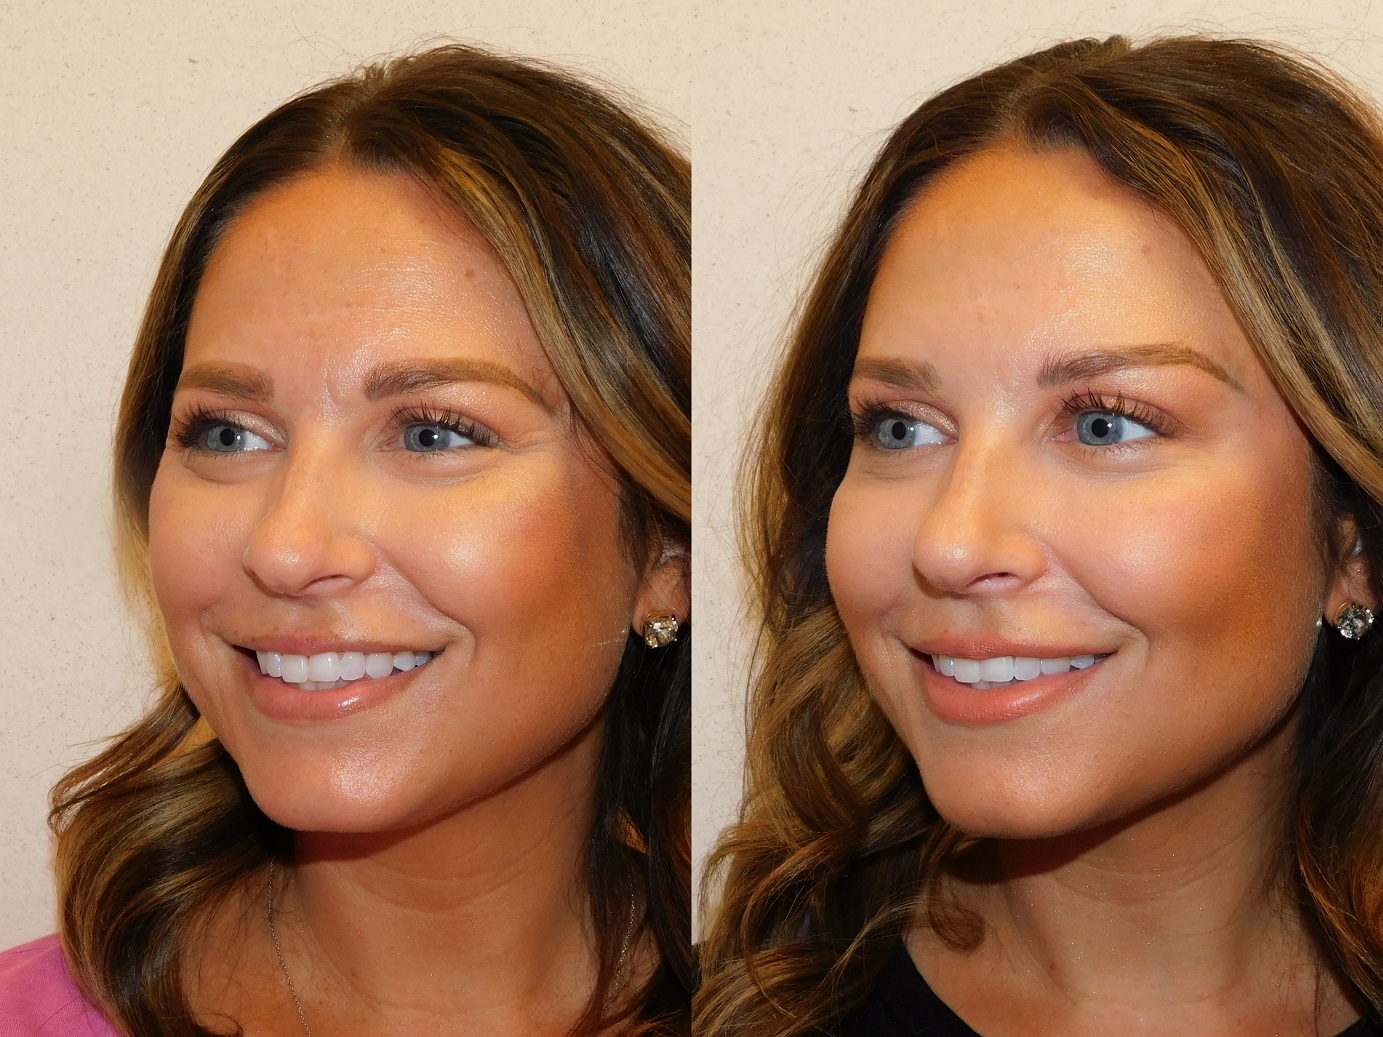 Botox results-Jeuveau-#NEWTOX-Dr. Joel Schlessinger-LovelySkin Omaha-Omaha Blogger-Omaha Beauty Blogger-Beauty Blog Post-Botox Results-Sabby Style-3